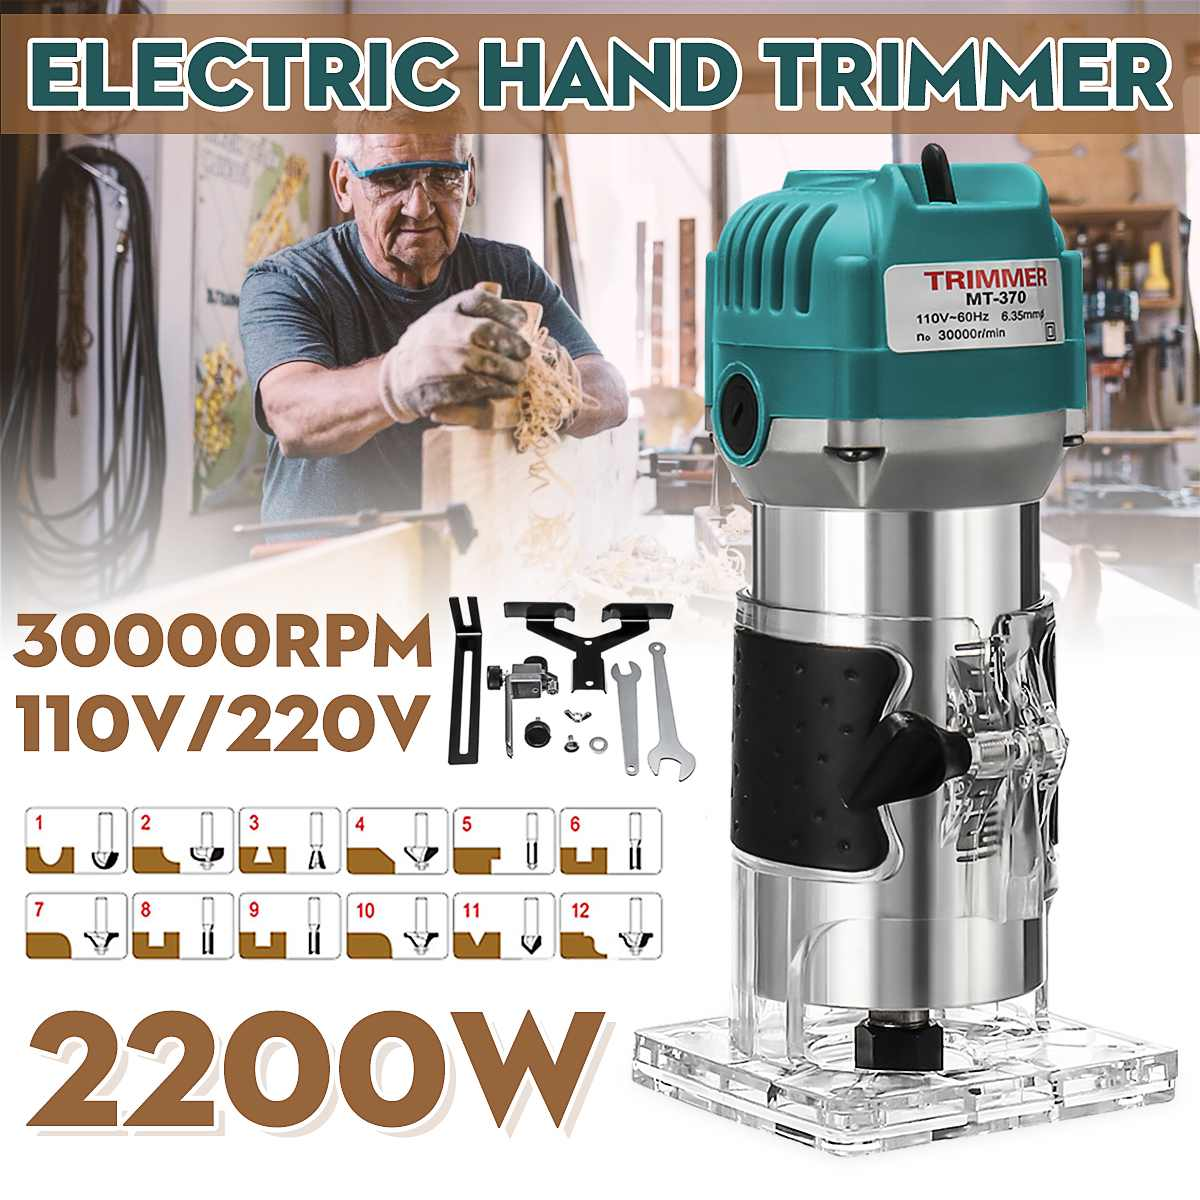 110V/220V 2200W 6.35mm Electric Hand Trimmer Wood Laminate Palms Router Joiners Router for Woodworking Power Tool Kit